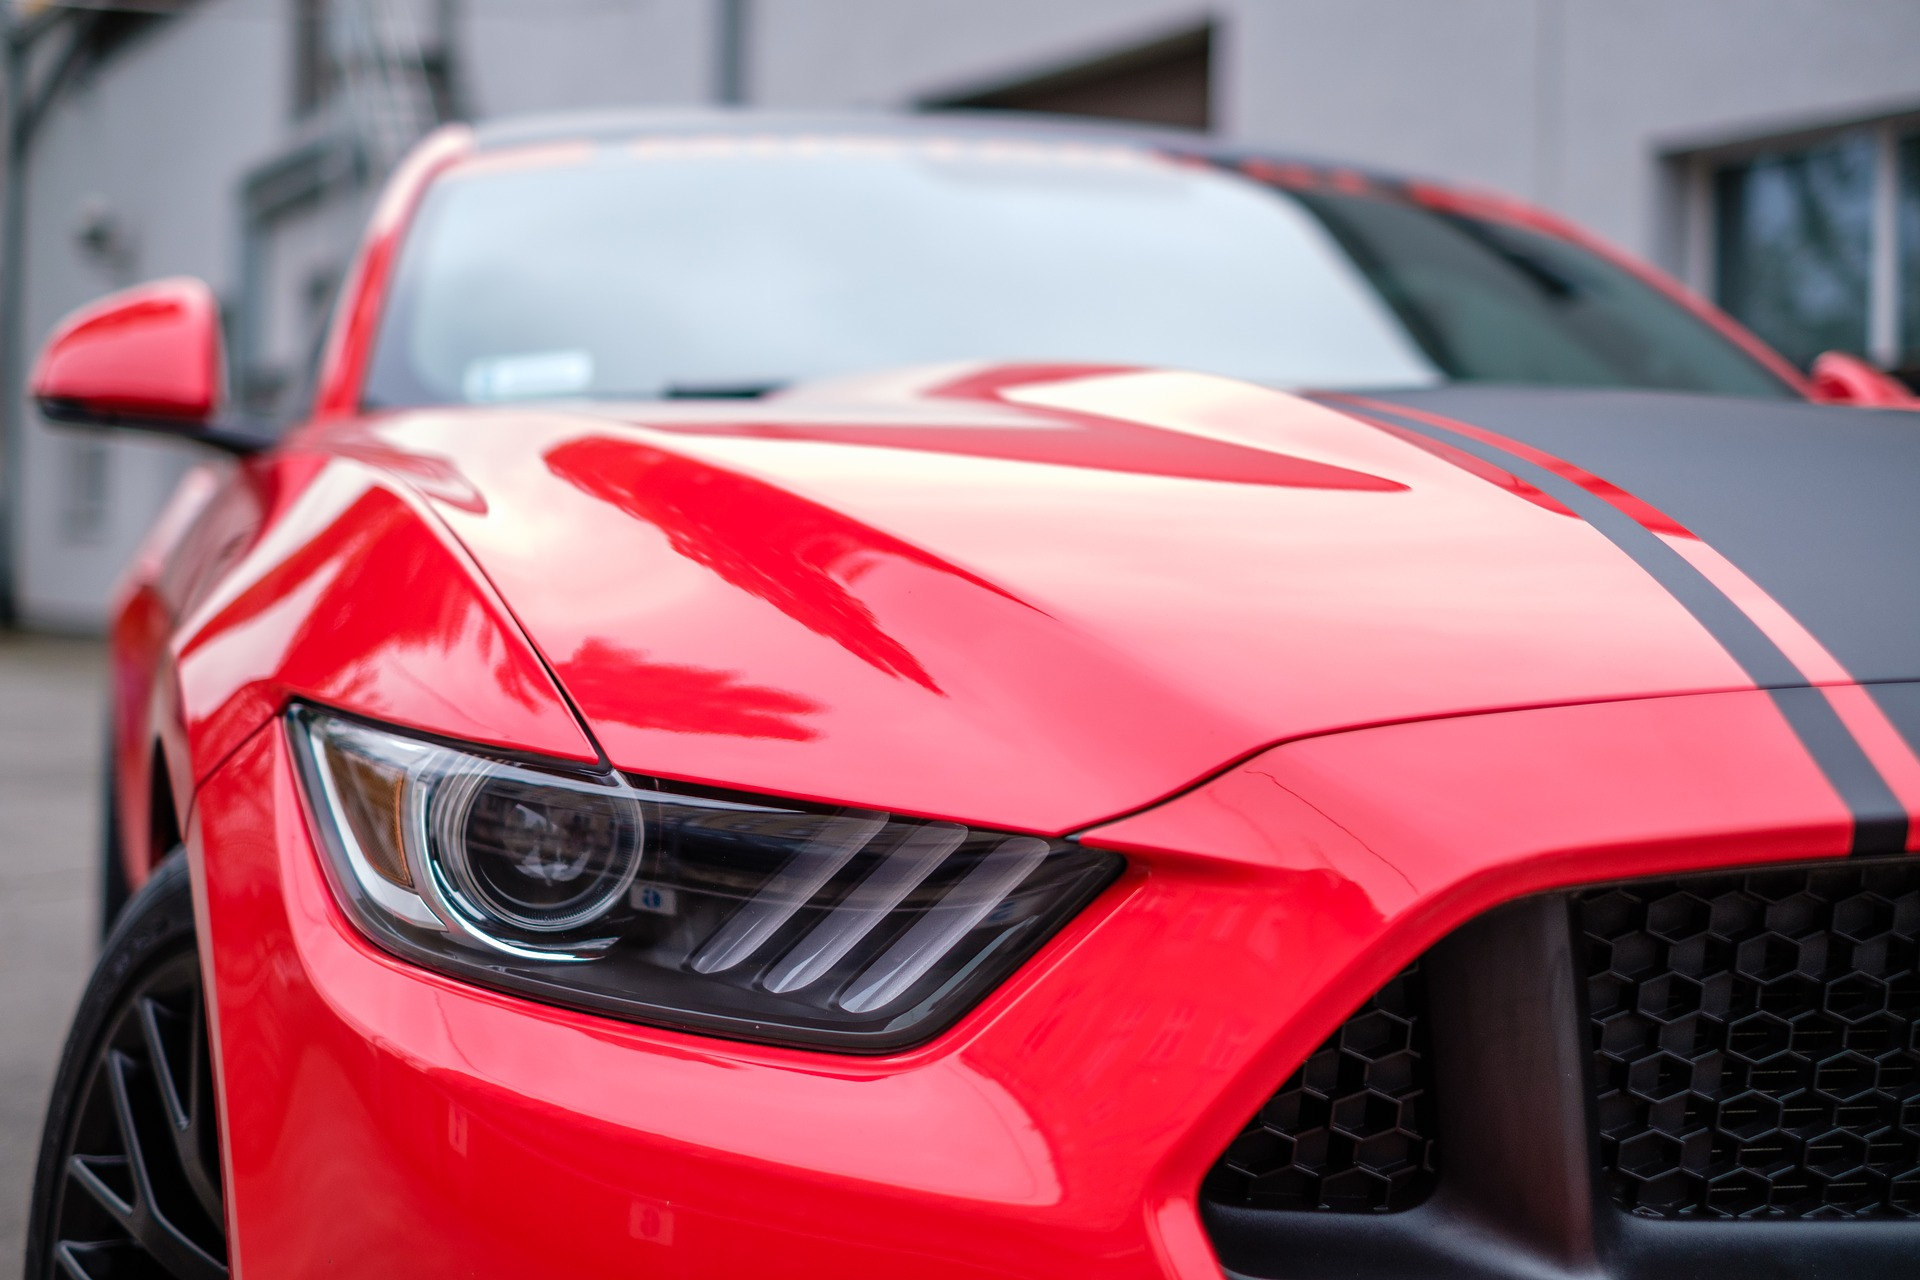 new mustang, fast mustang, ford mustang, master power brakes